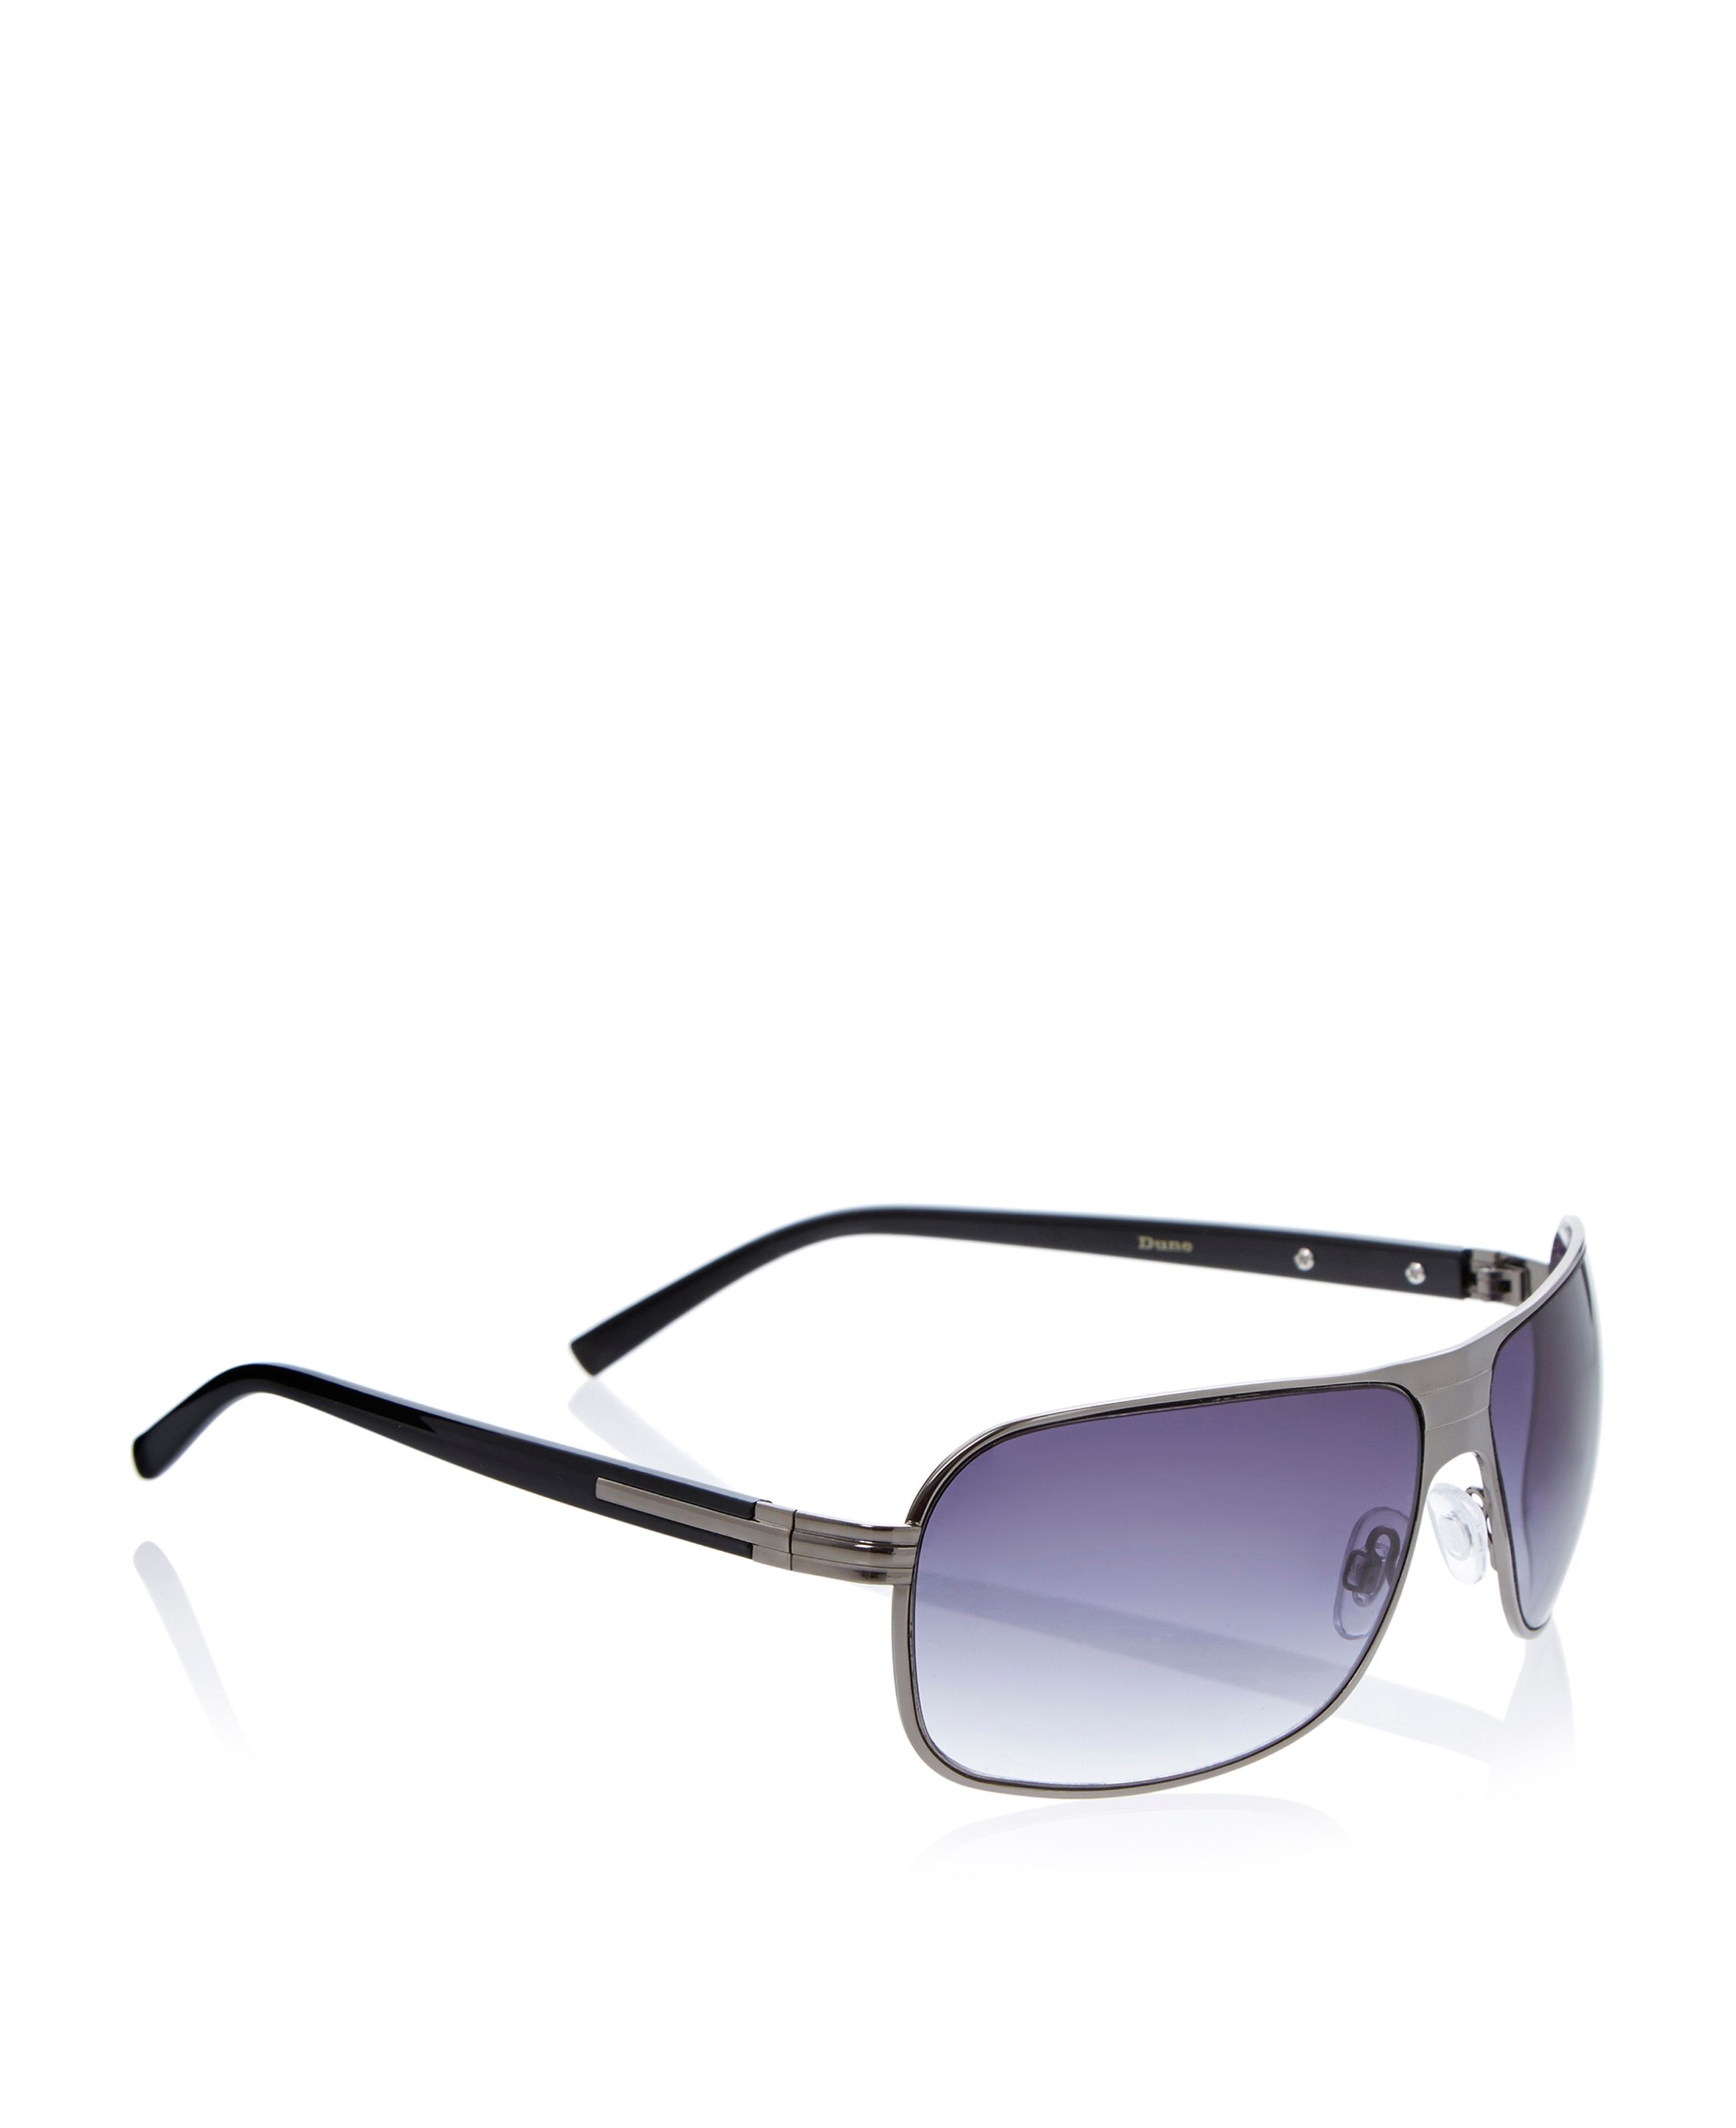 Praize gunmetal rim mens sunglasses